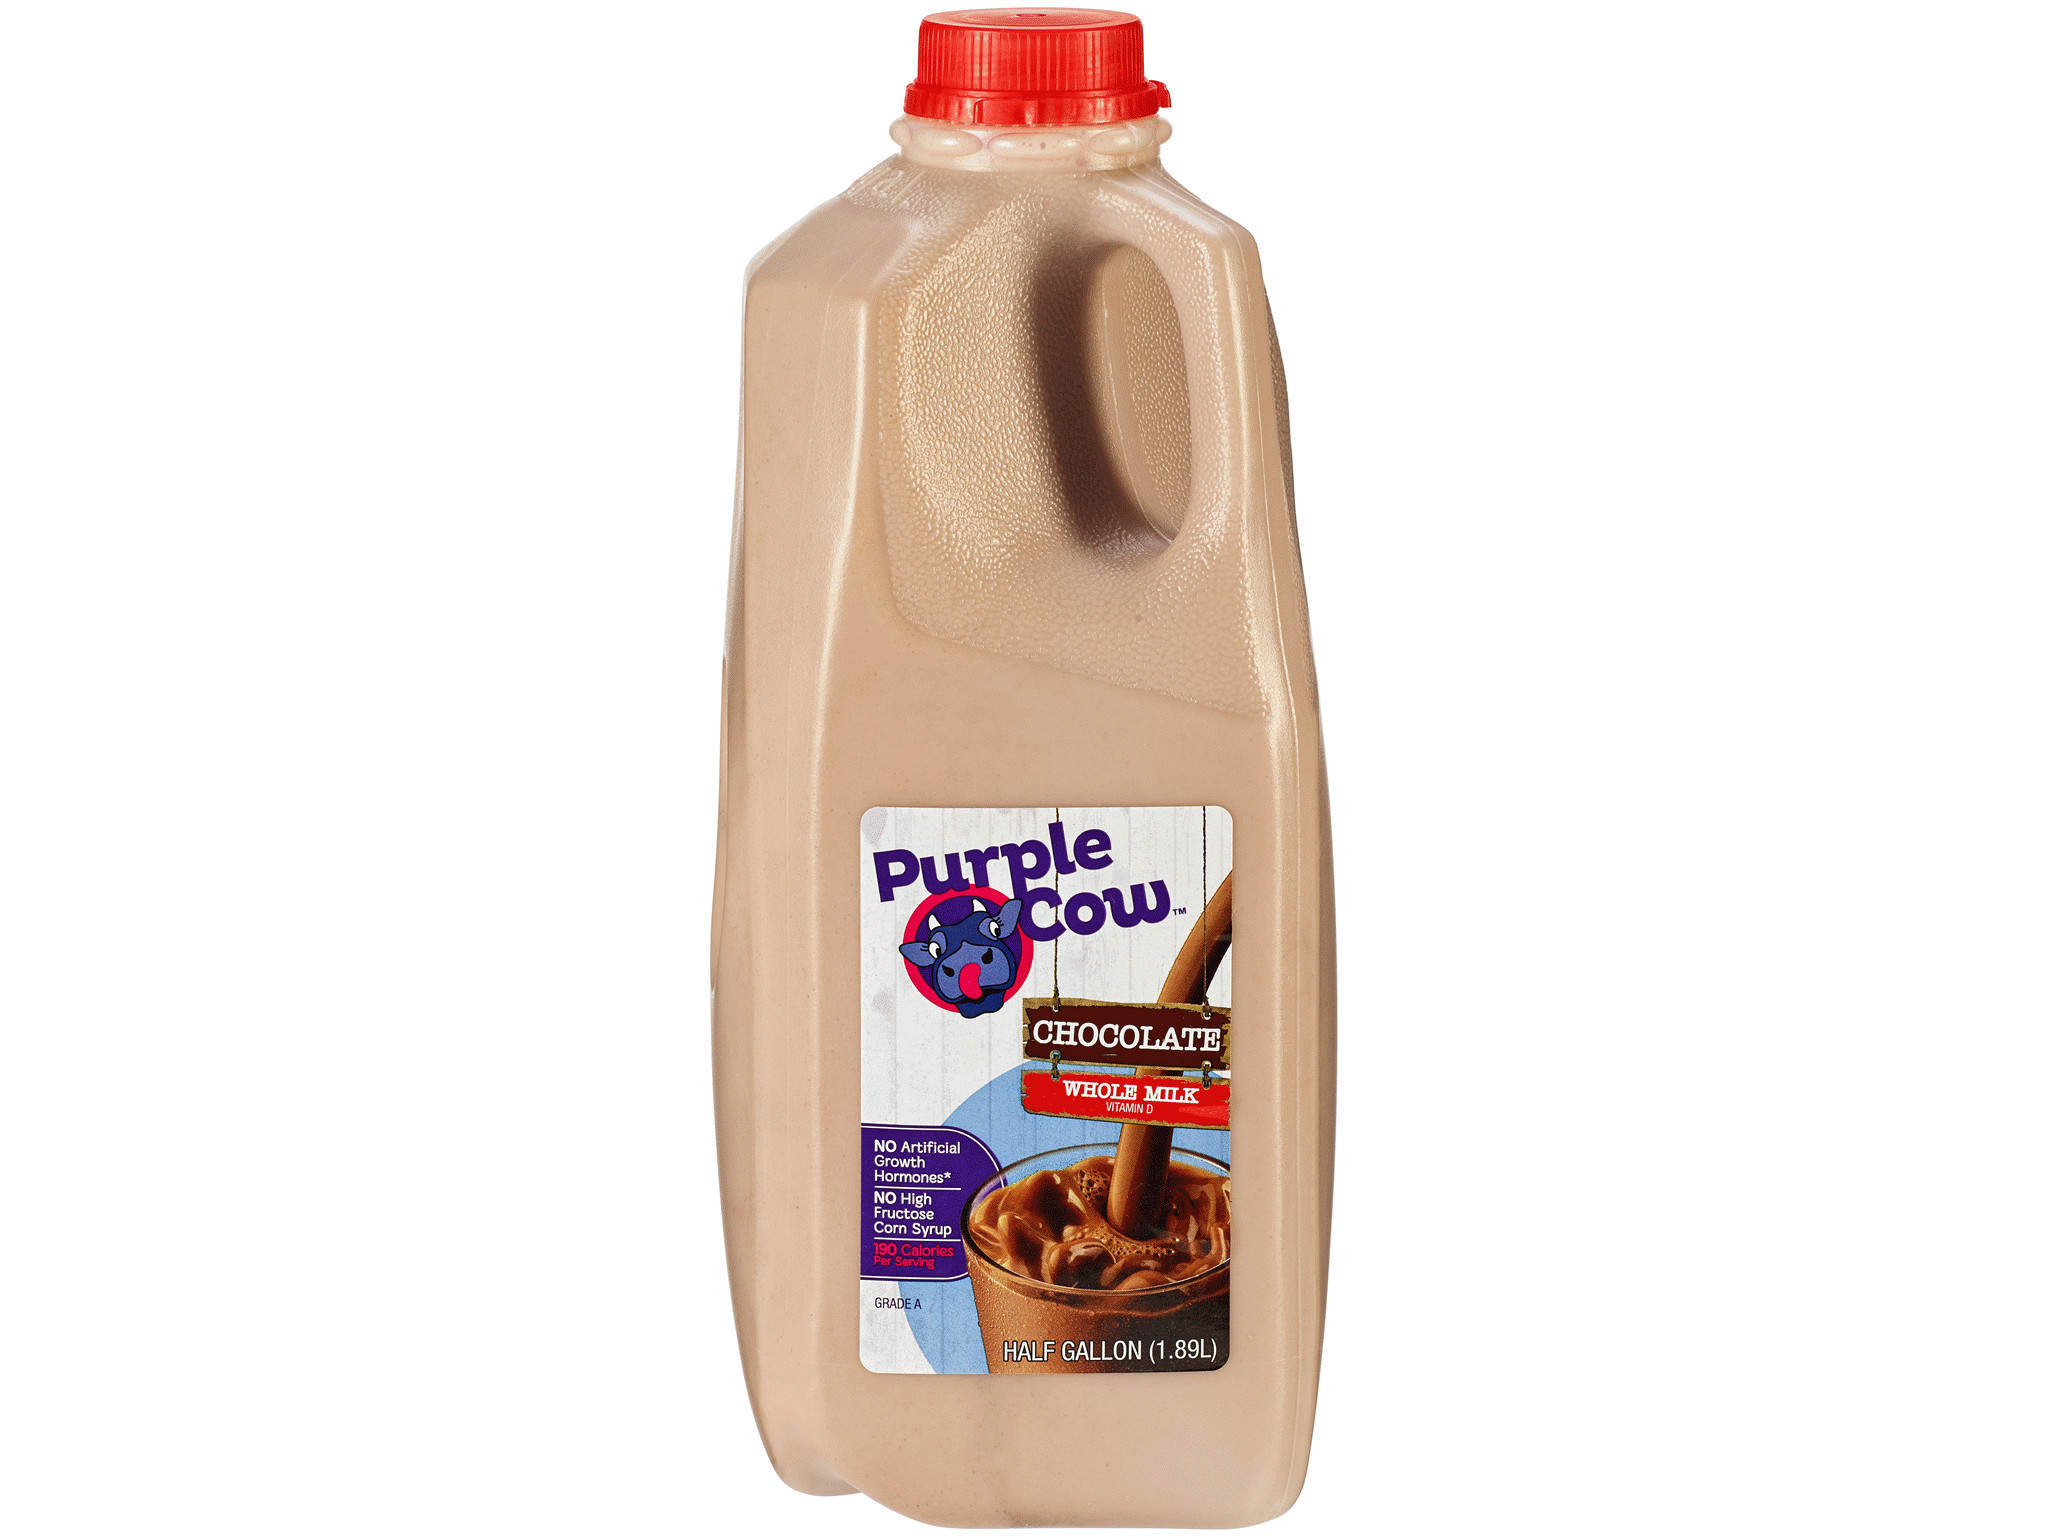 Chocolate Milk | Meijer.com